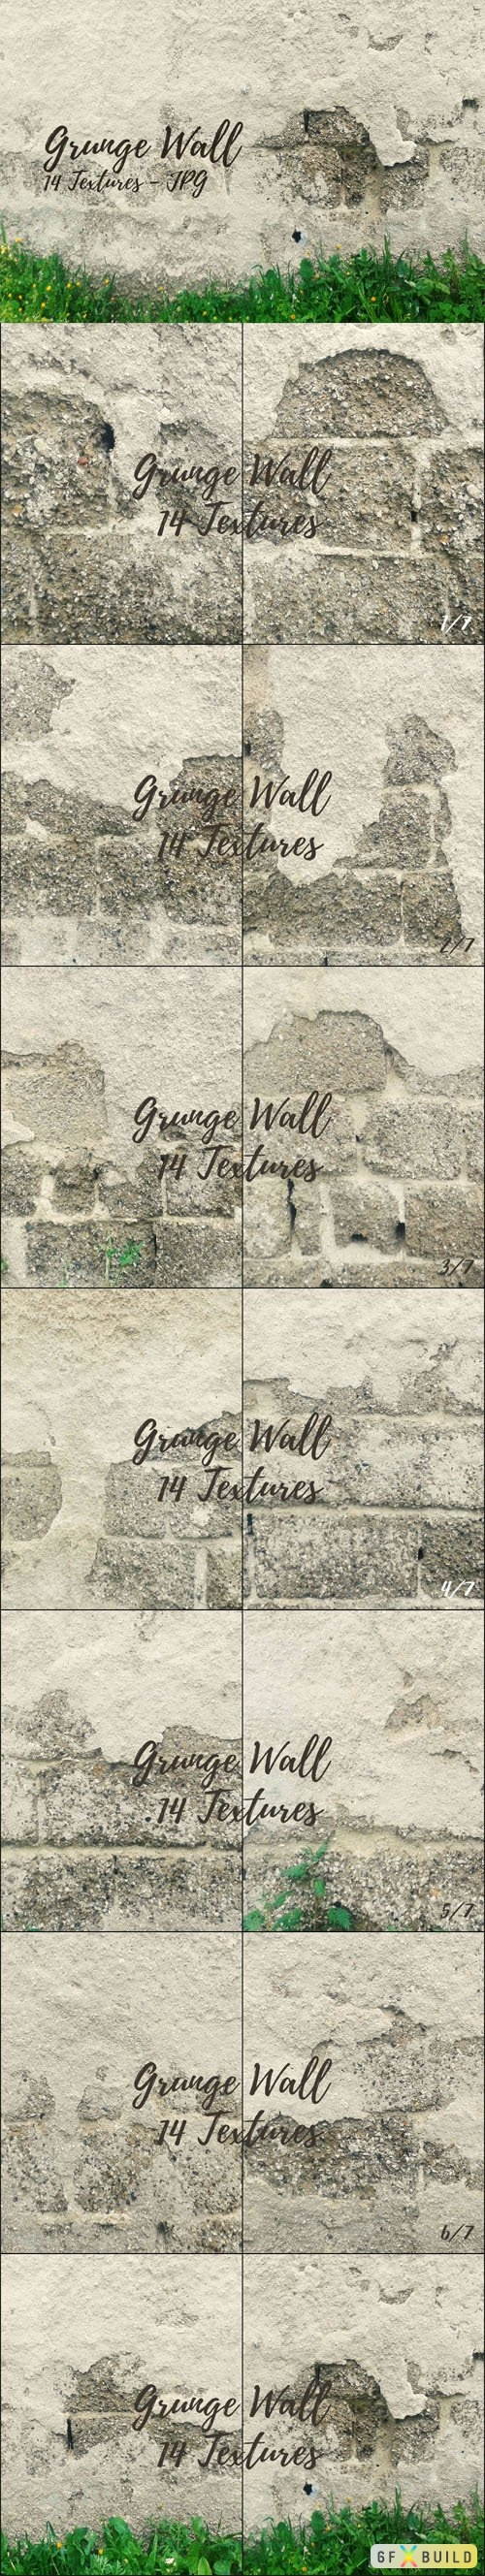 14 Grunge Stuccoed Wall Background Textures